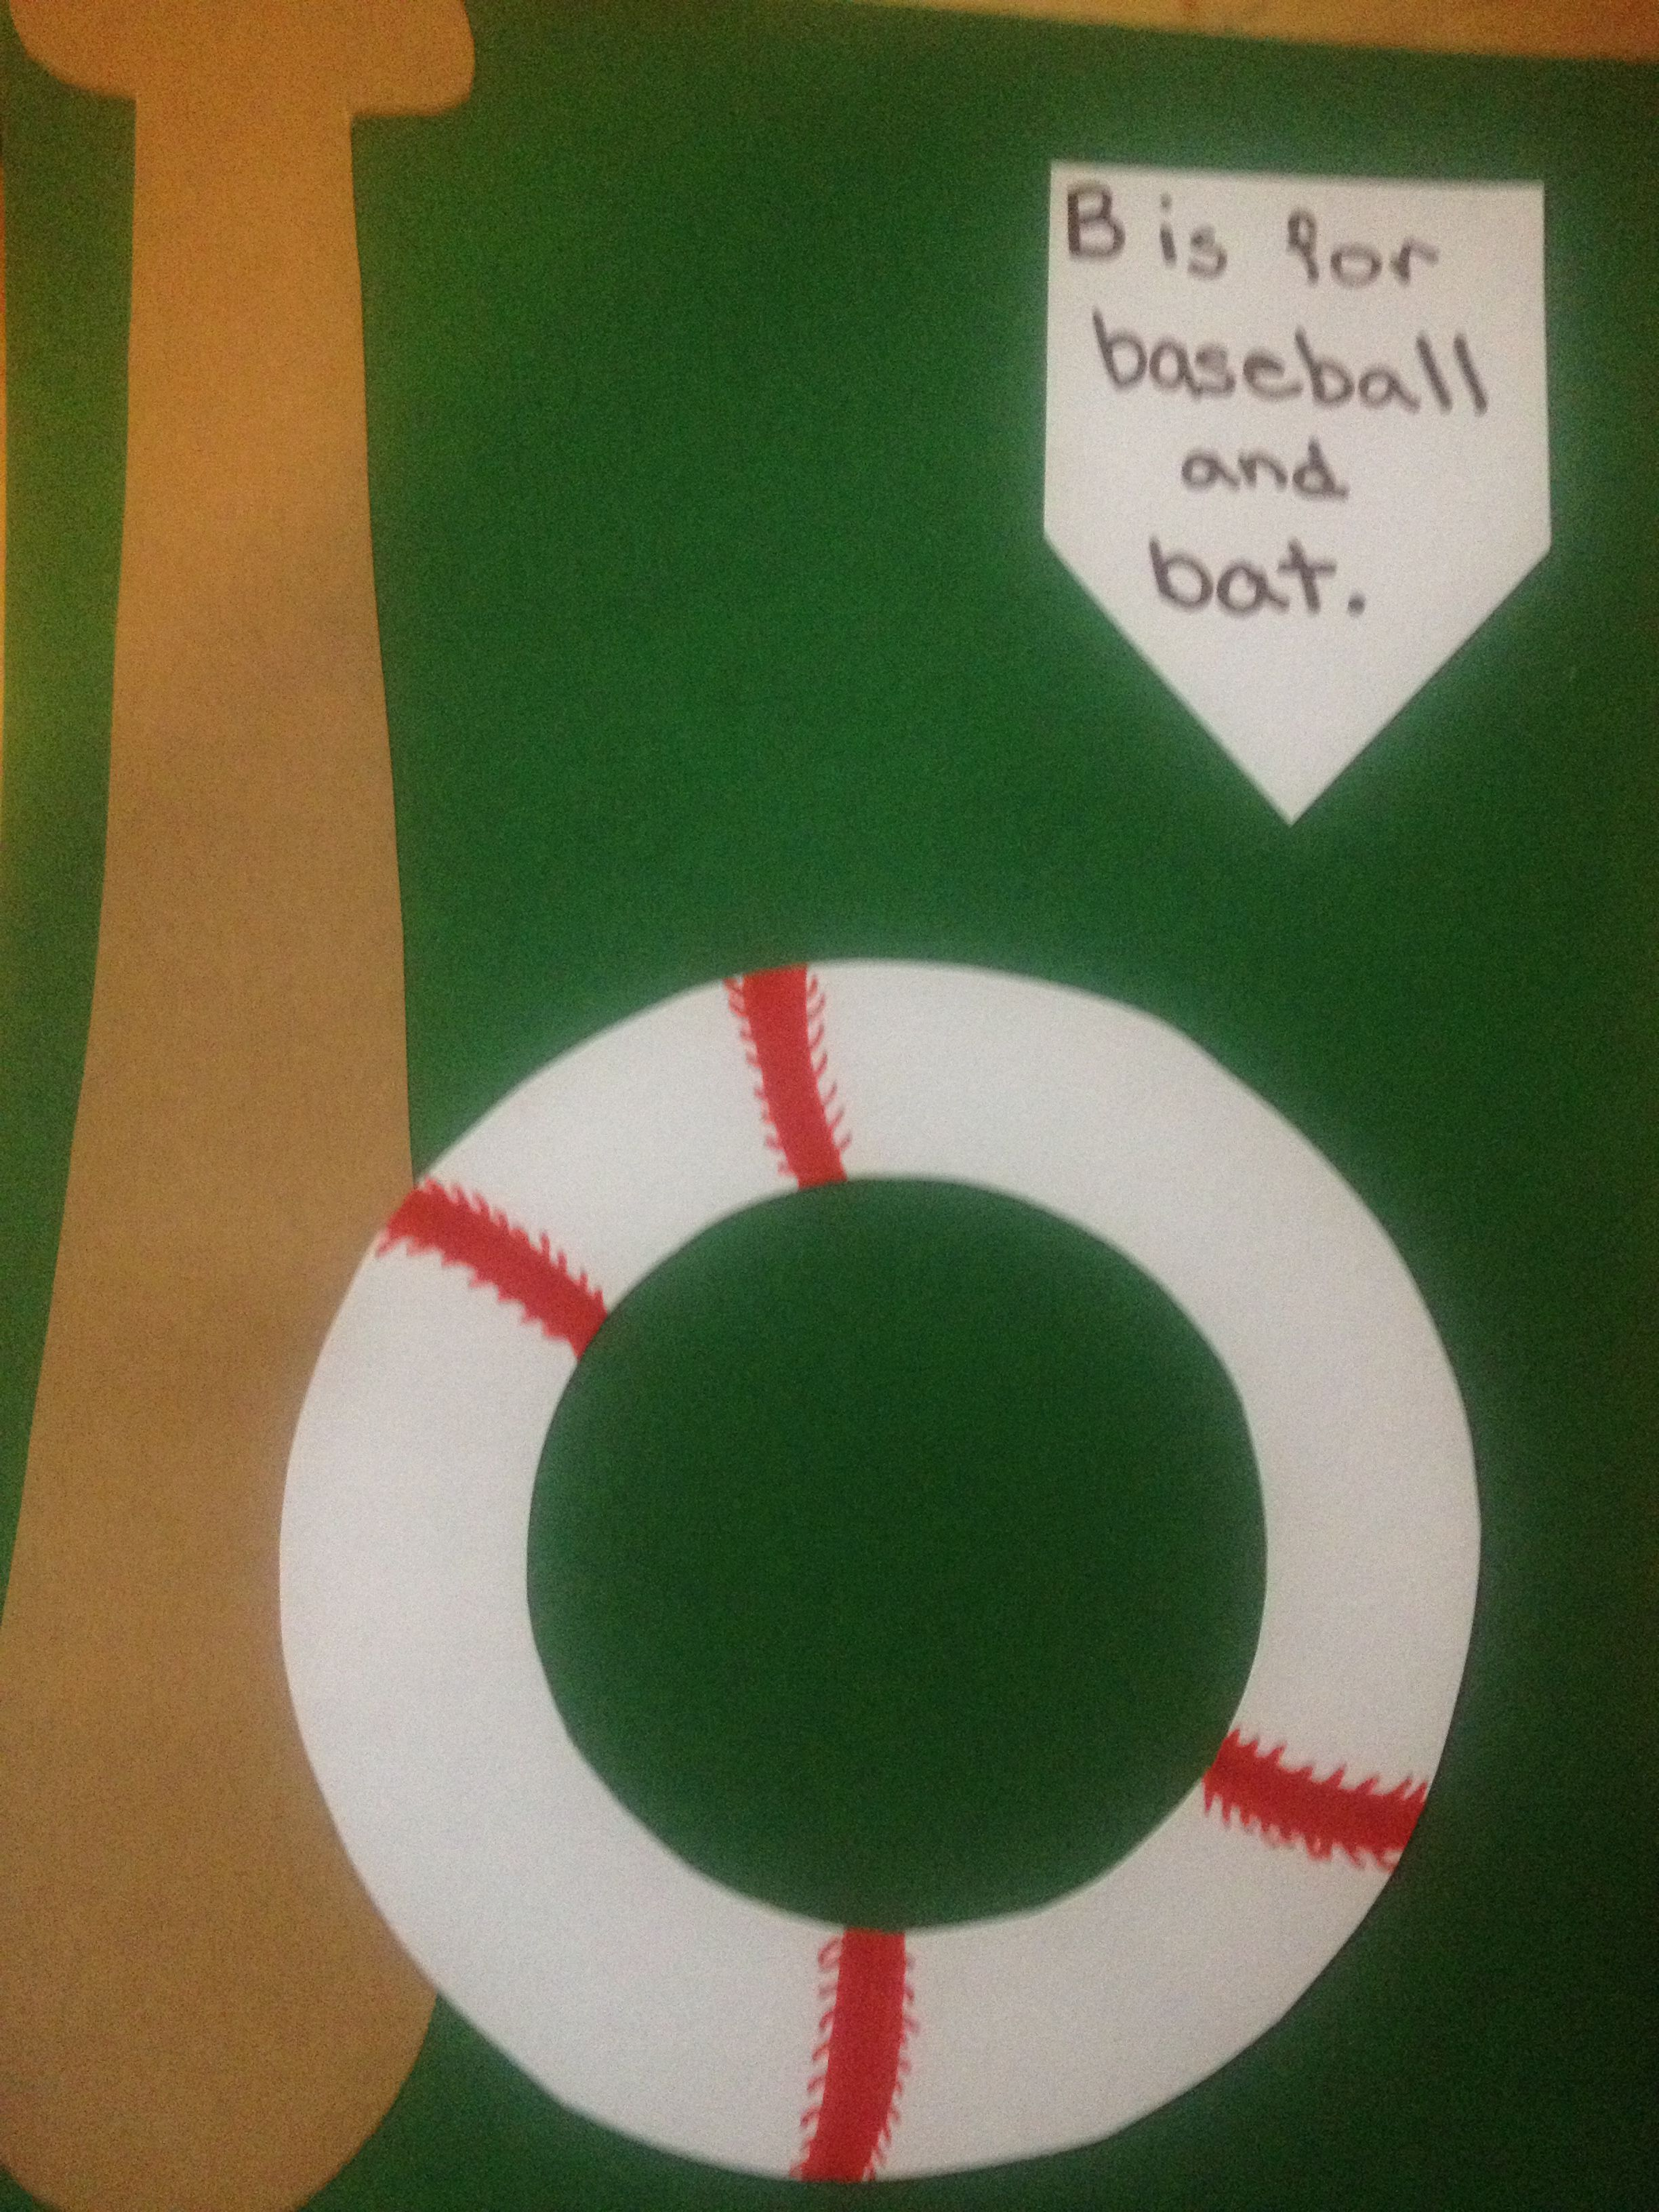 B Is For Baseball And Bat